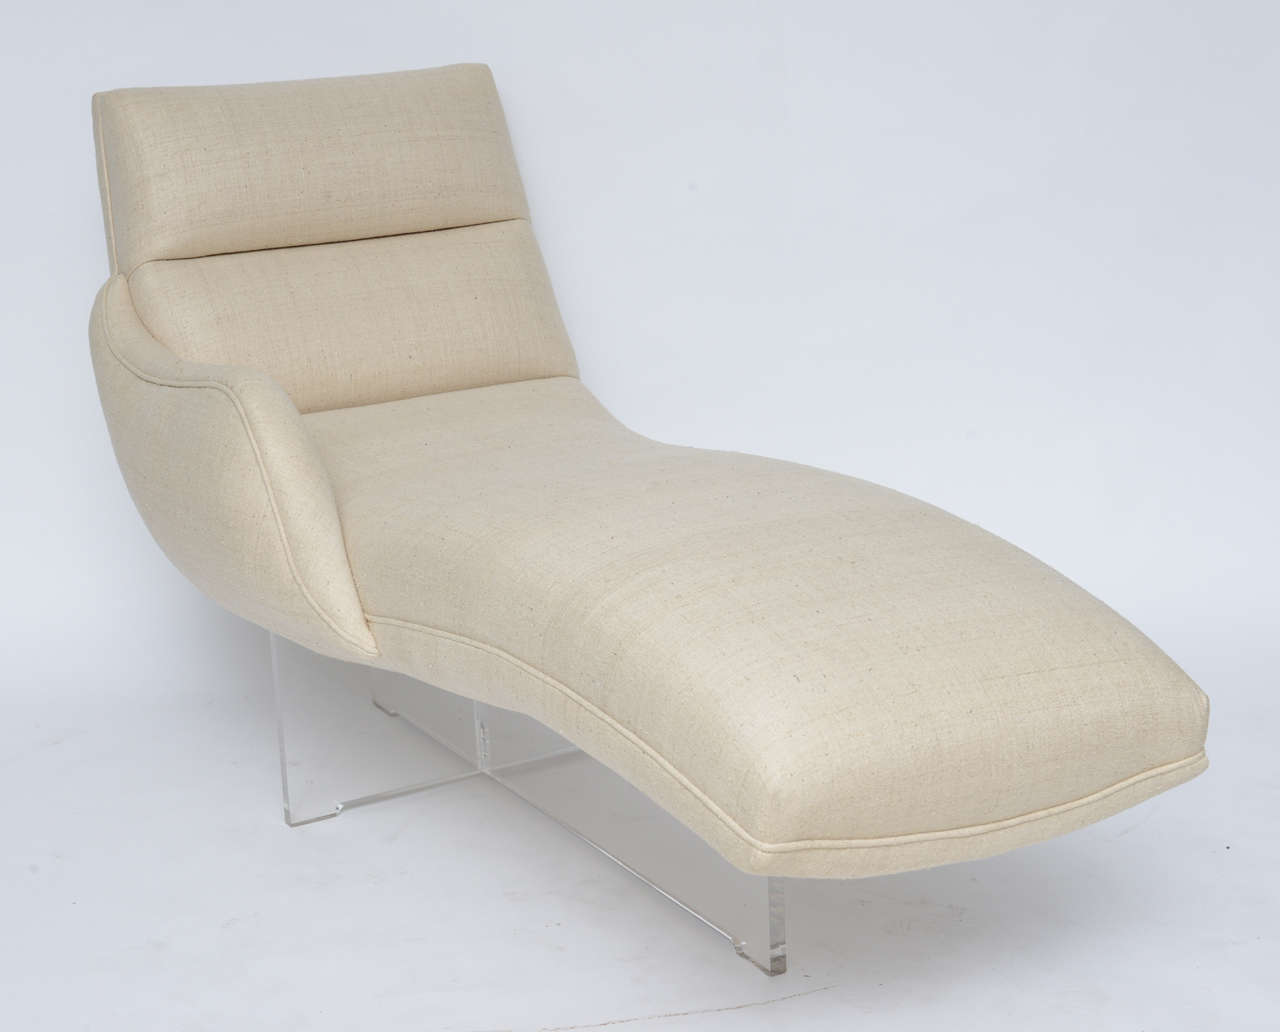 Erica chaise lounge by vladimir kagan at 1stdibs for Art nouveau chaise lounge